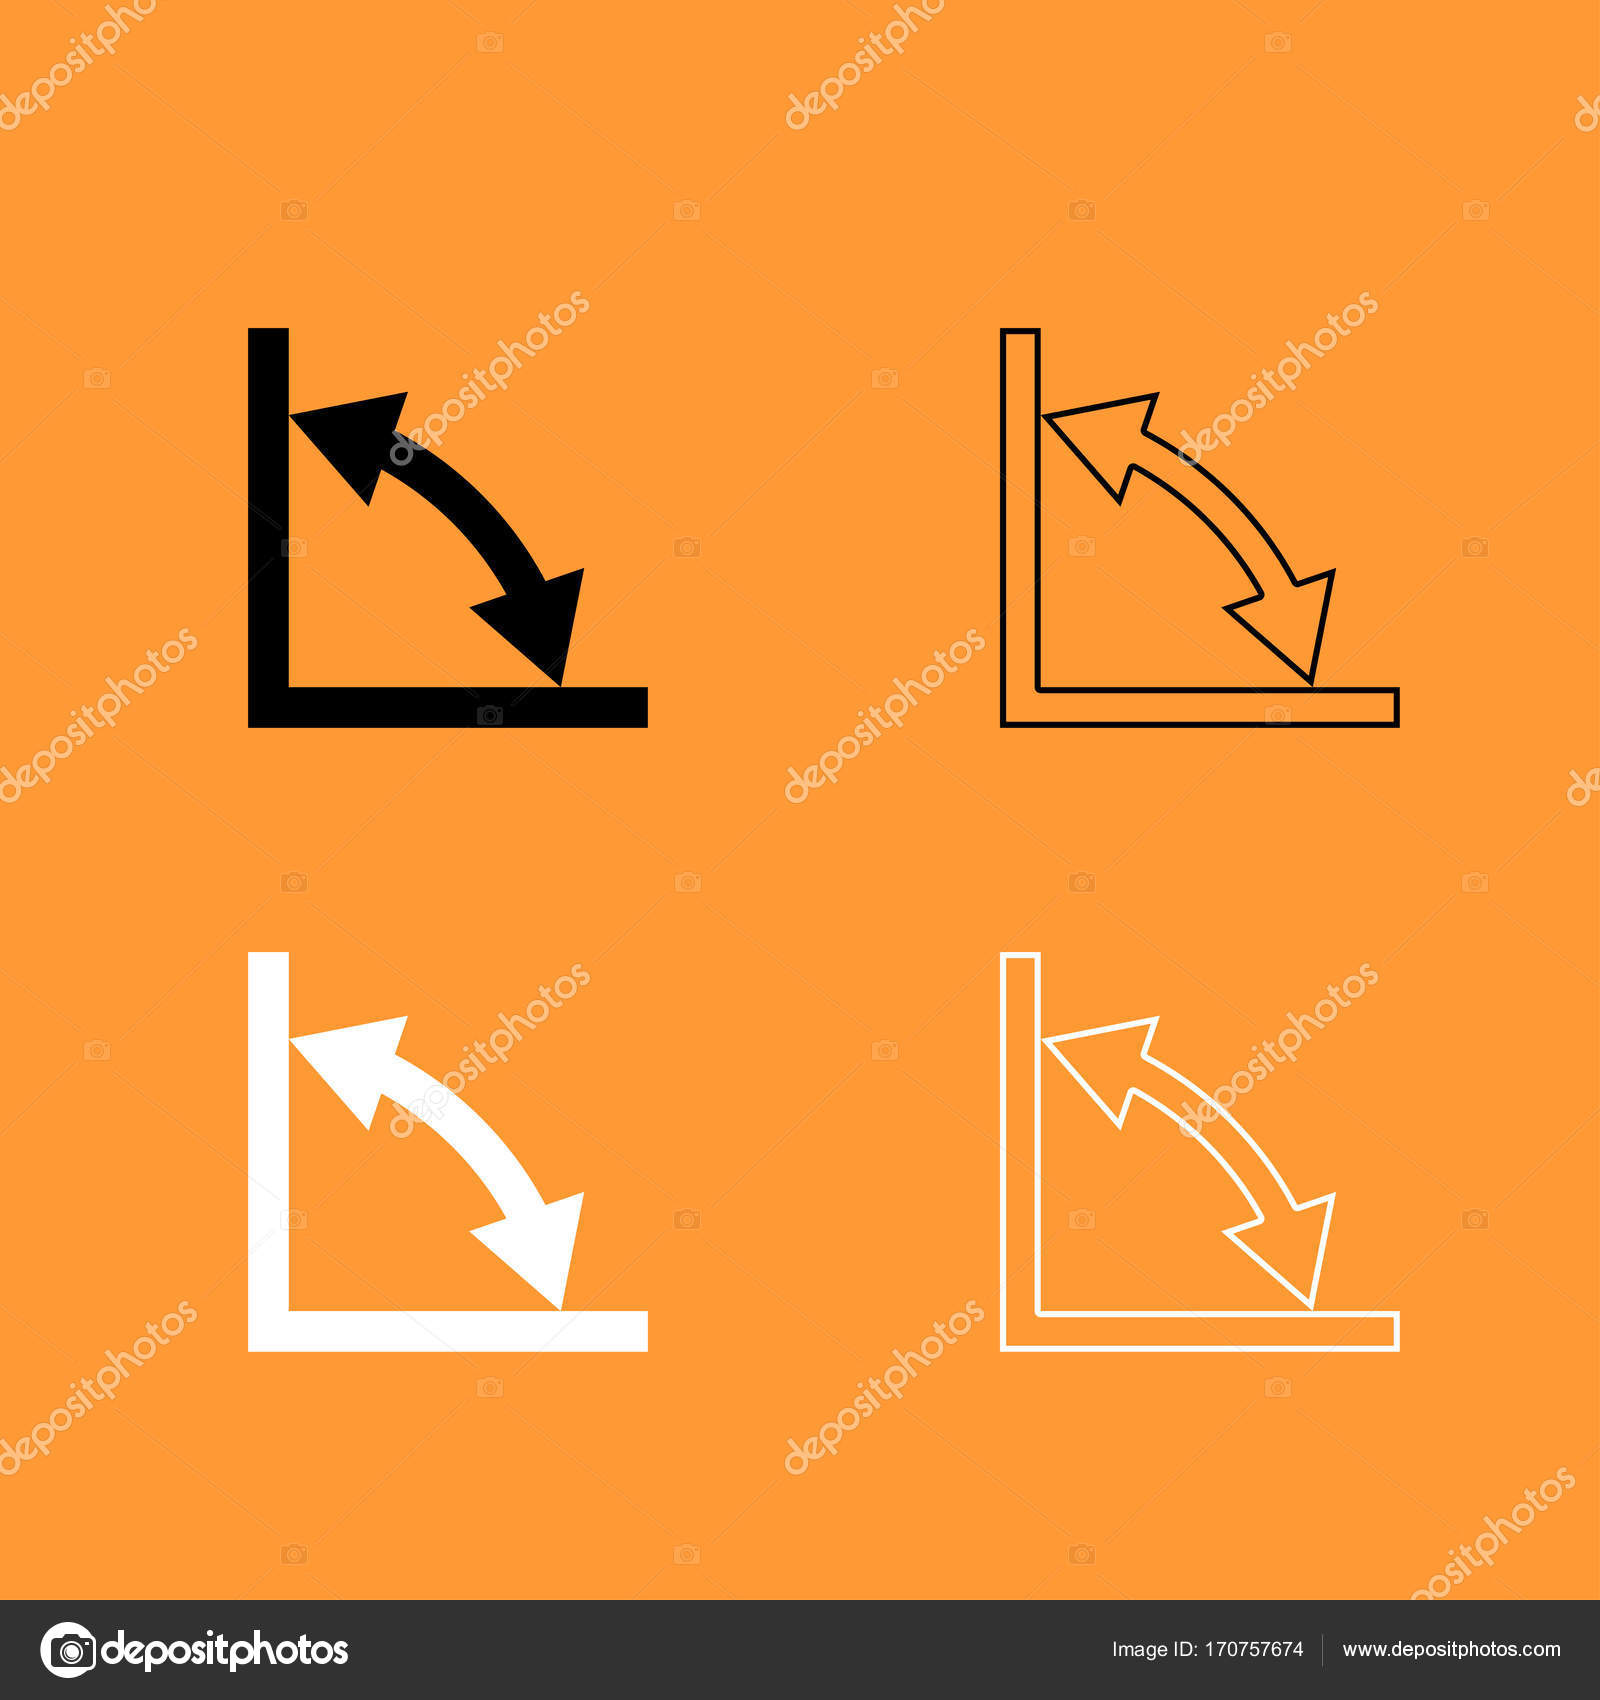 V symbol math image collections symbol and sign ideas math relation symbols gallery symbol and sign ideas v symbol math image collections symbol and sign buycottarizona